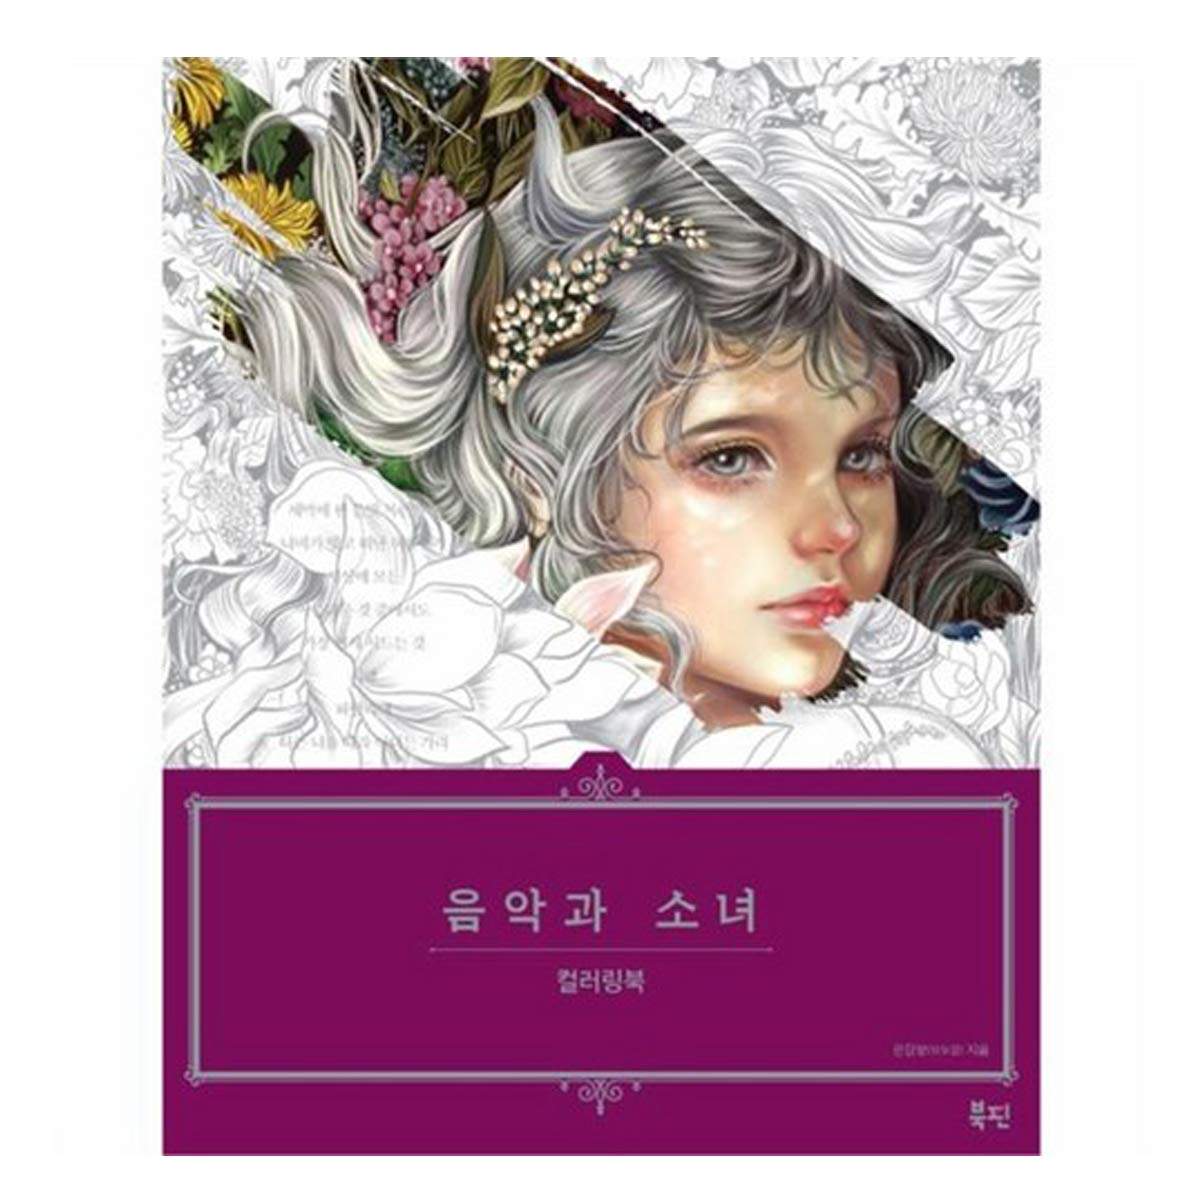 Momo girl girls with music coloring book new version of color healing book color drawing 104 pages of lovely girls colouring book vol 2 680g extra thick